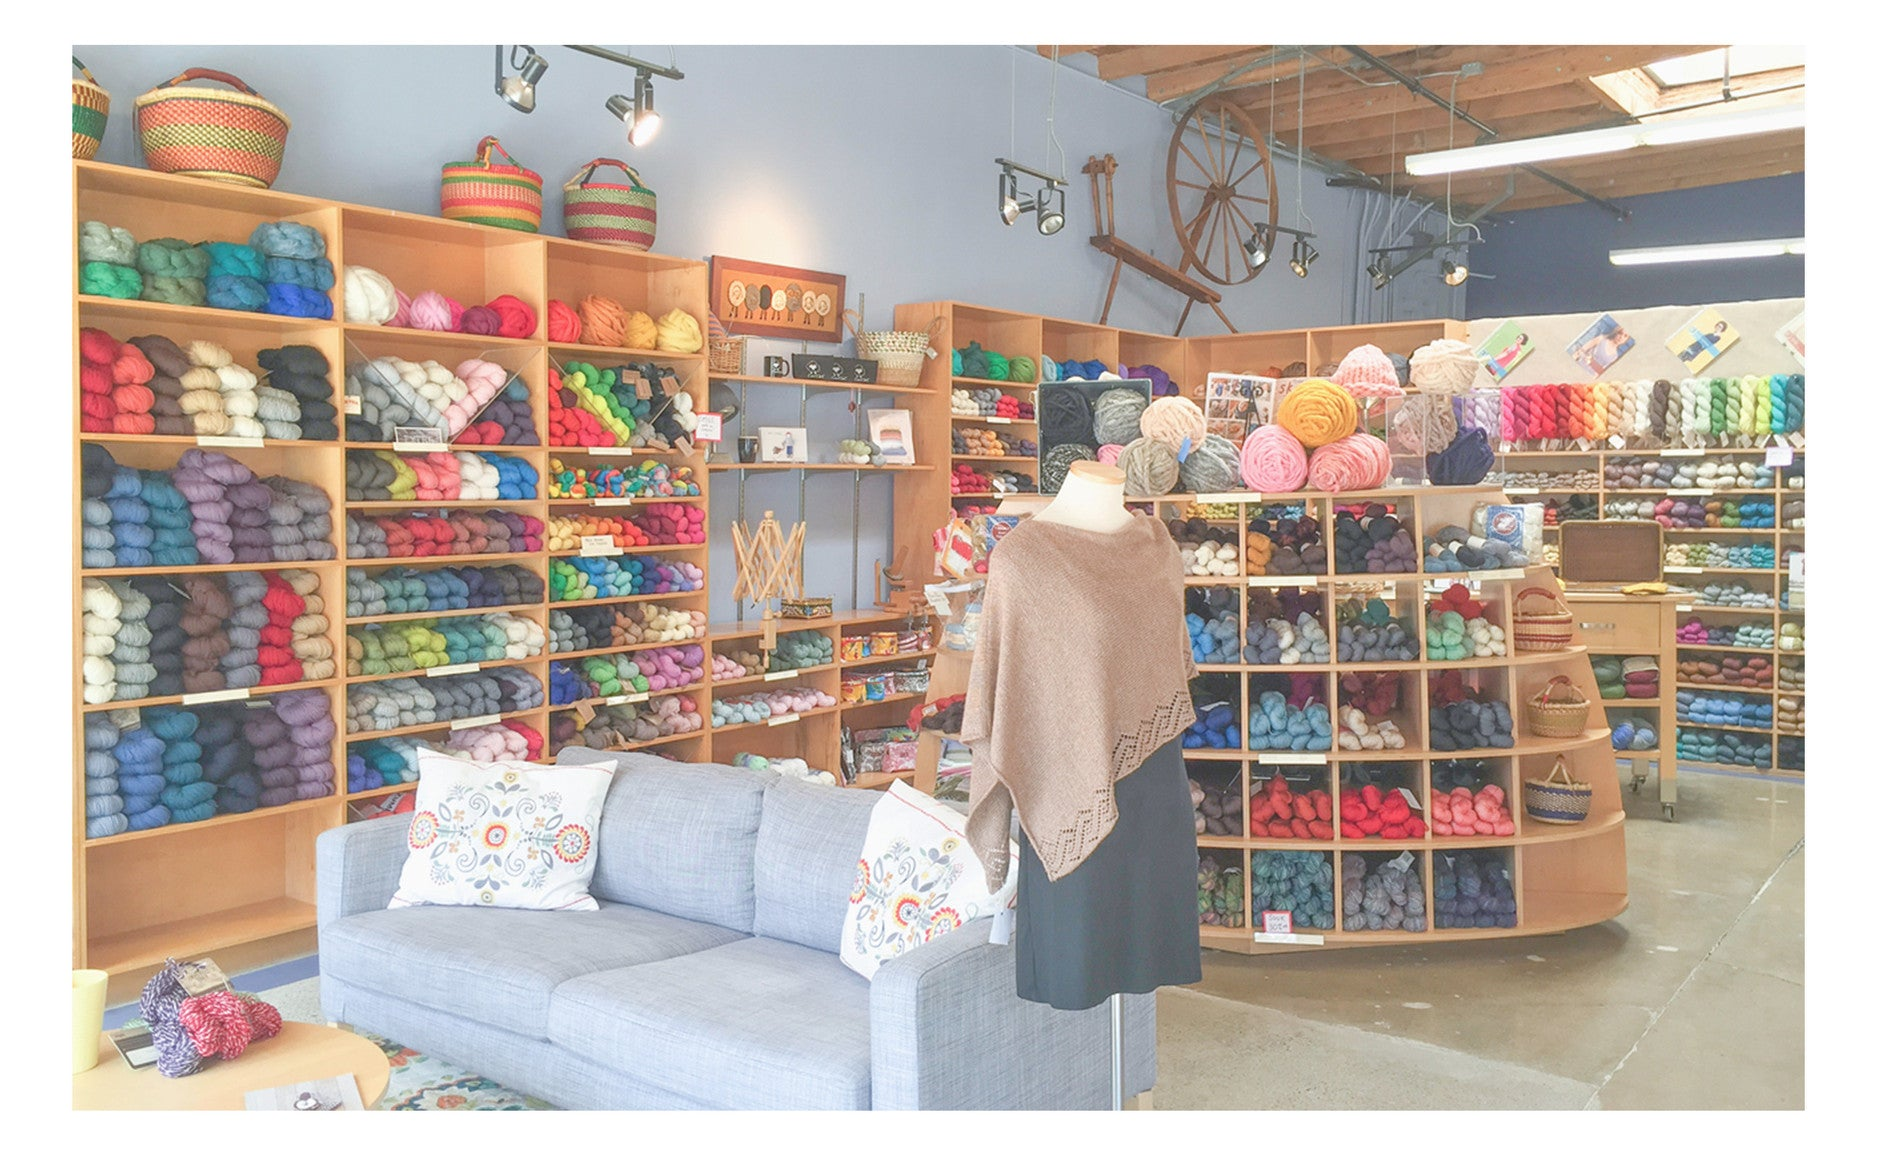 Interior image showing a seating area, yarn and sample knits.